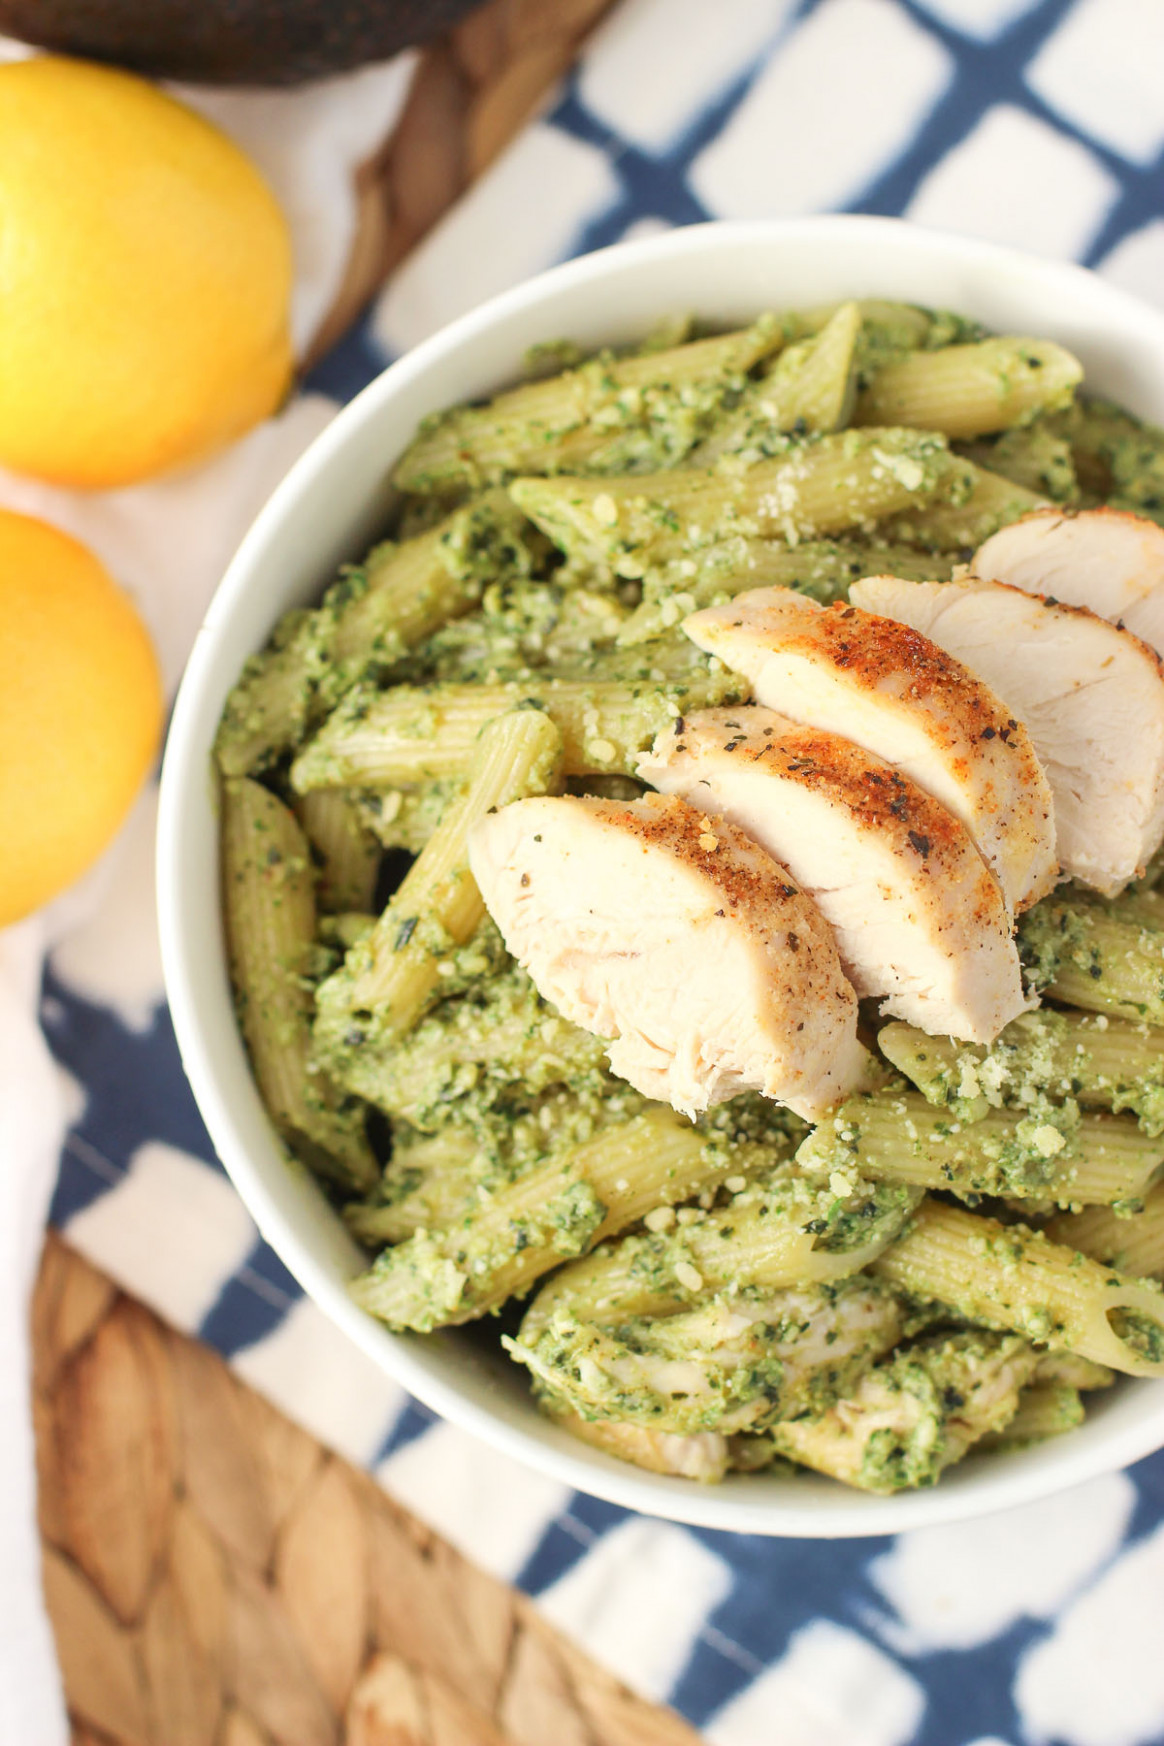 Avocado Pesto Pasta With Chicken